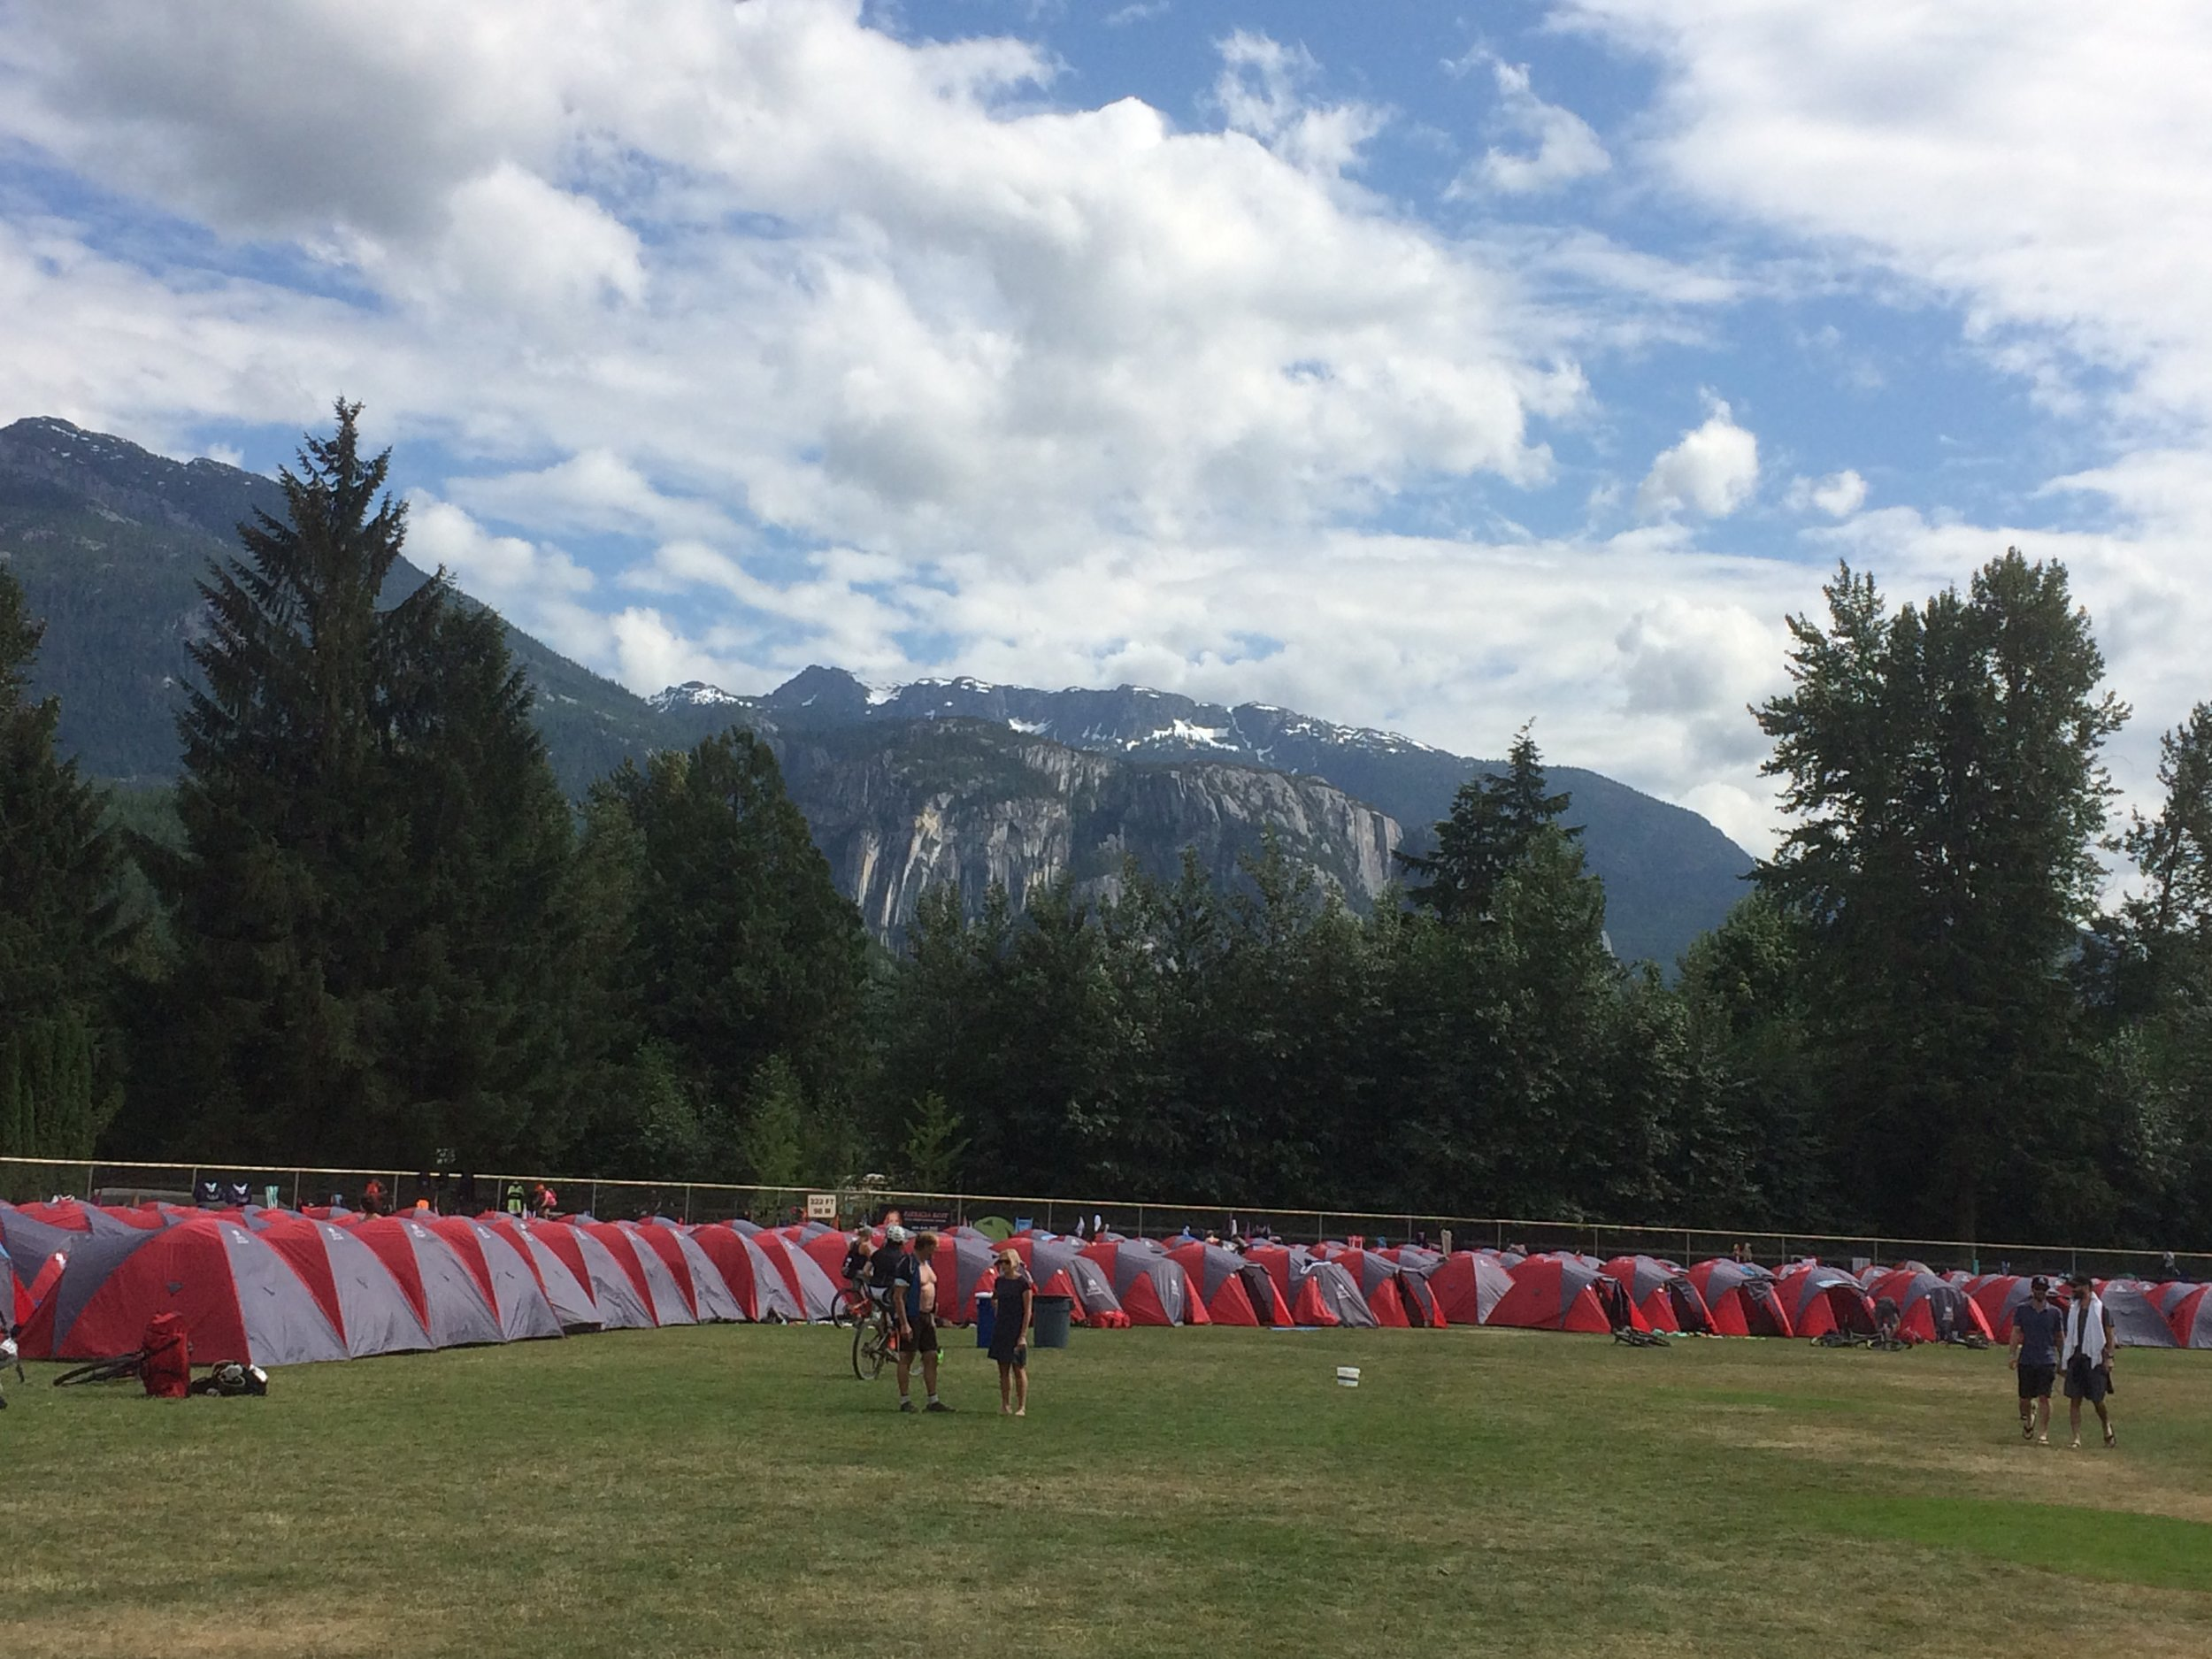 Tent city had a beautiful backdrop today.